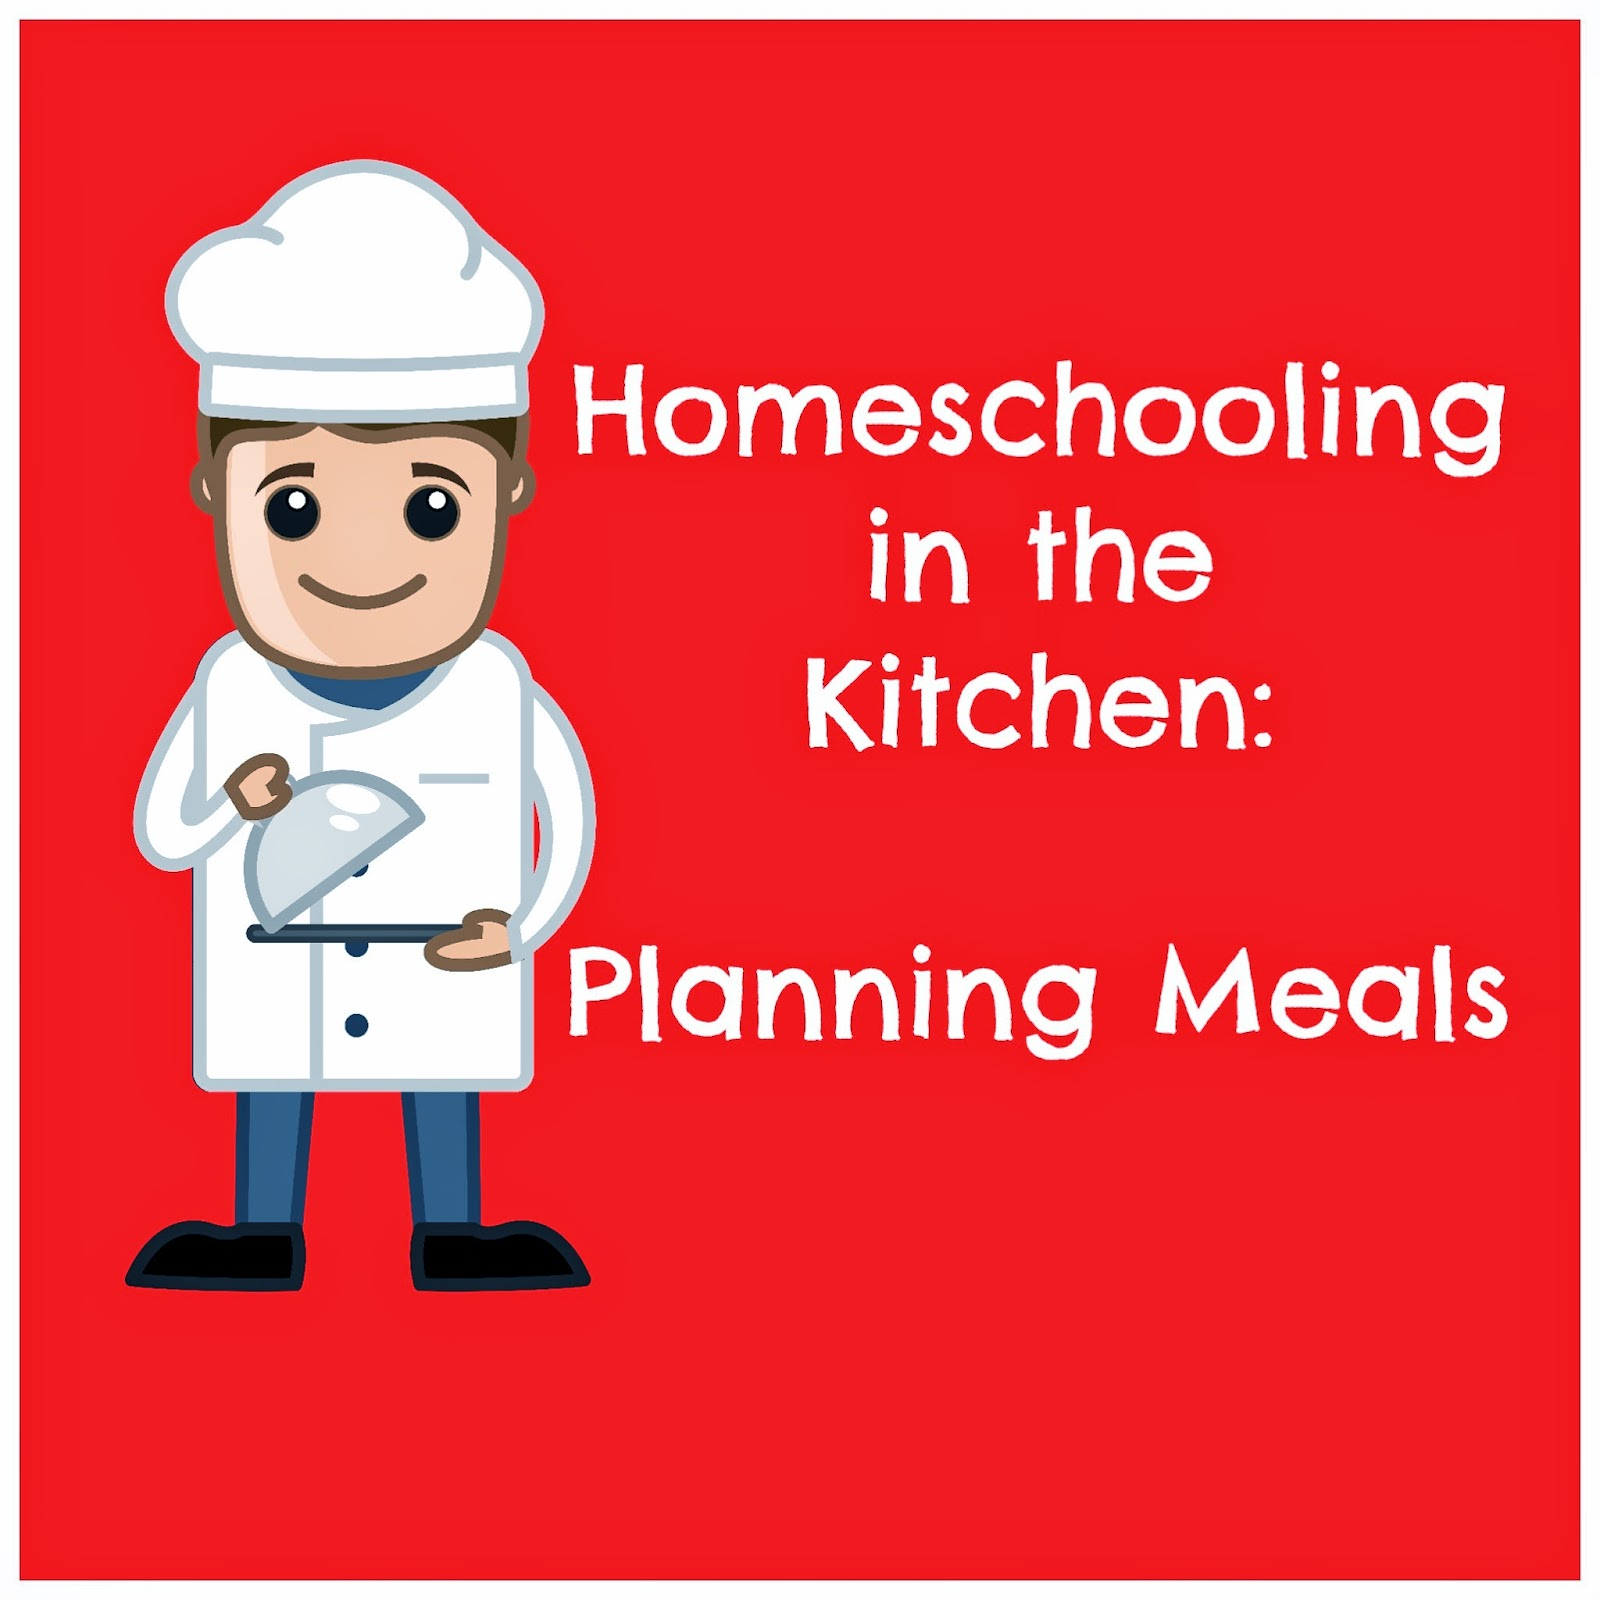 Homeschooling in the Kitchen: Planning Meals